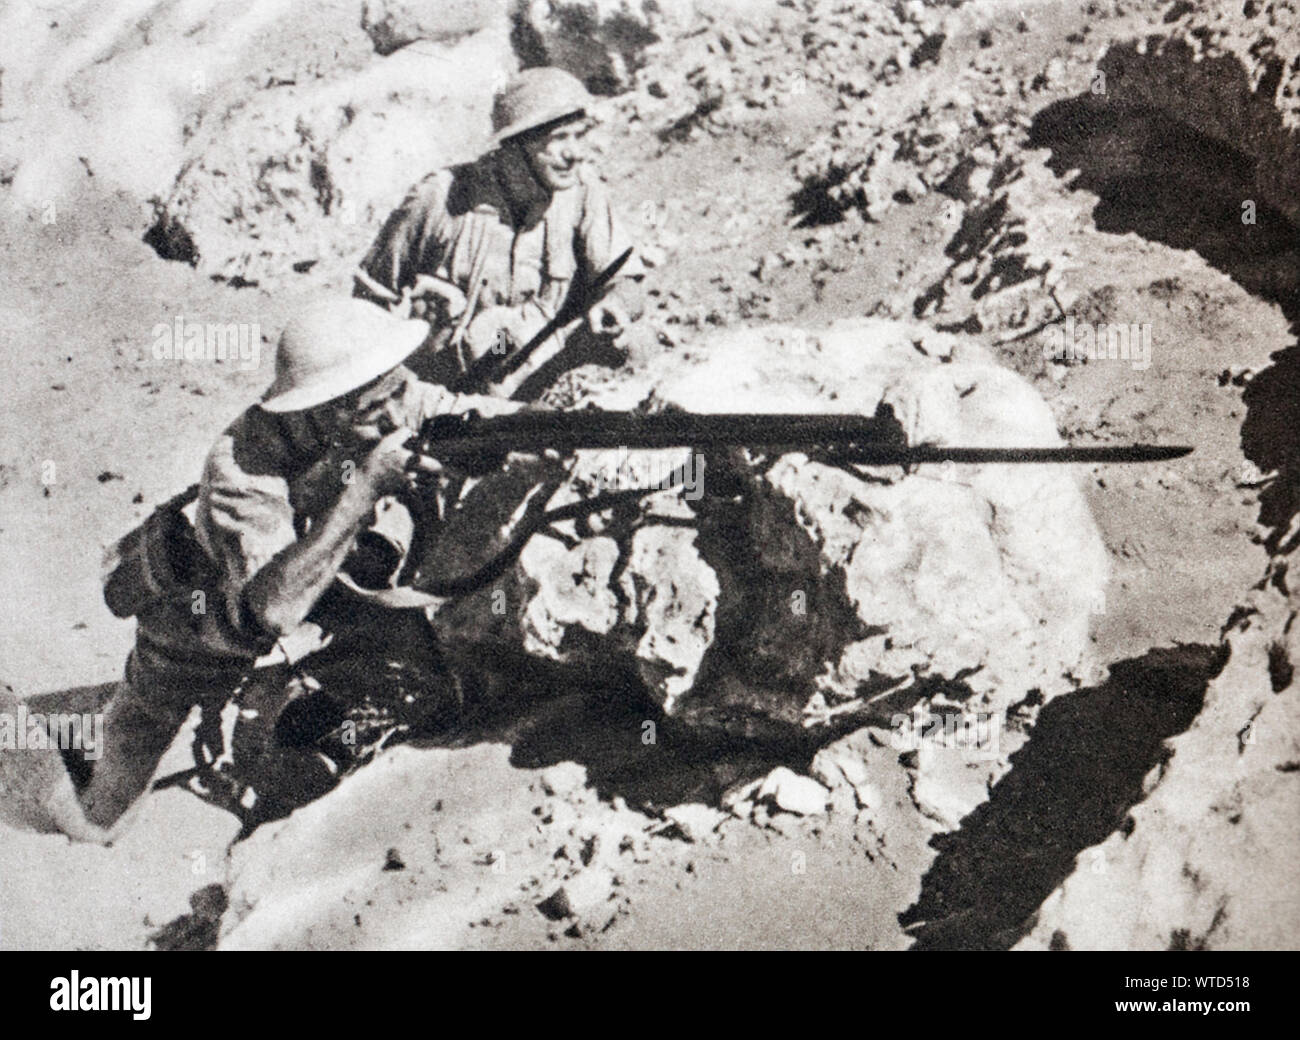 WWII period, North Africa. Tobruk's resistance. Polish soldats are part of the heroic Garrison. Stock Photo